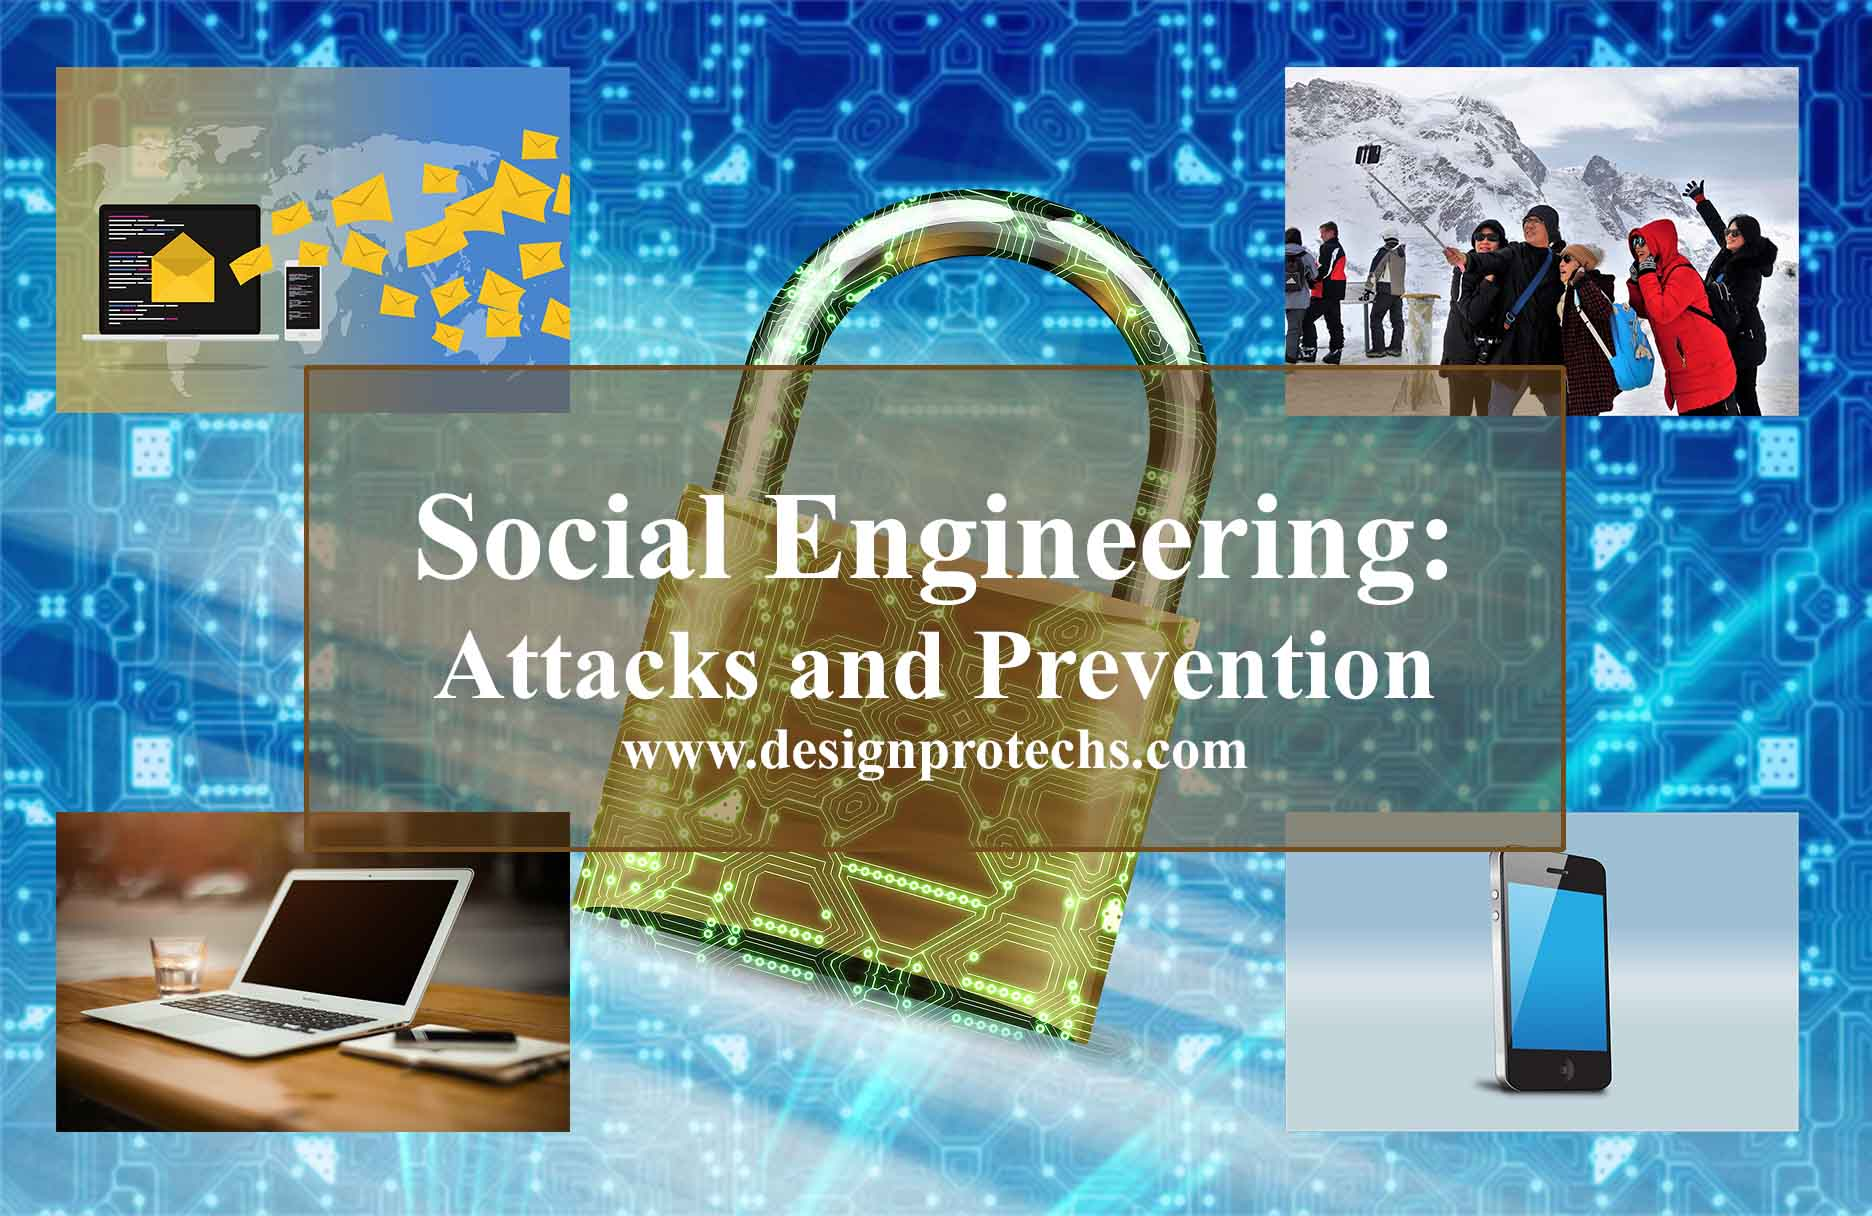 Social Engineering - Attacks and Prevention